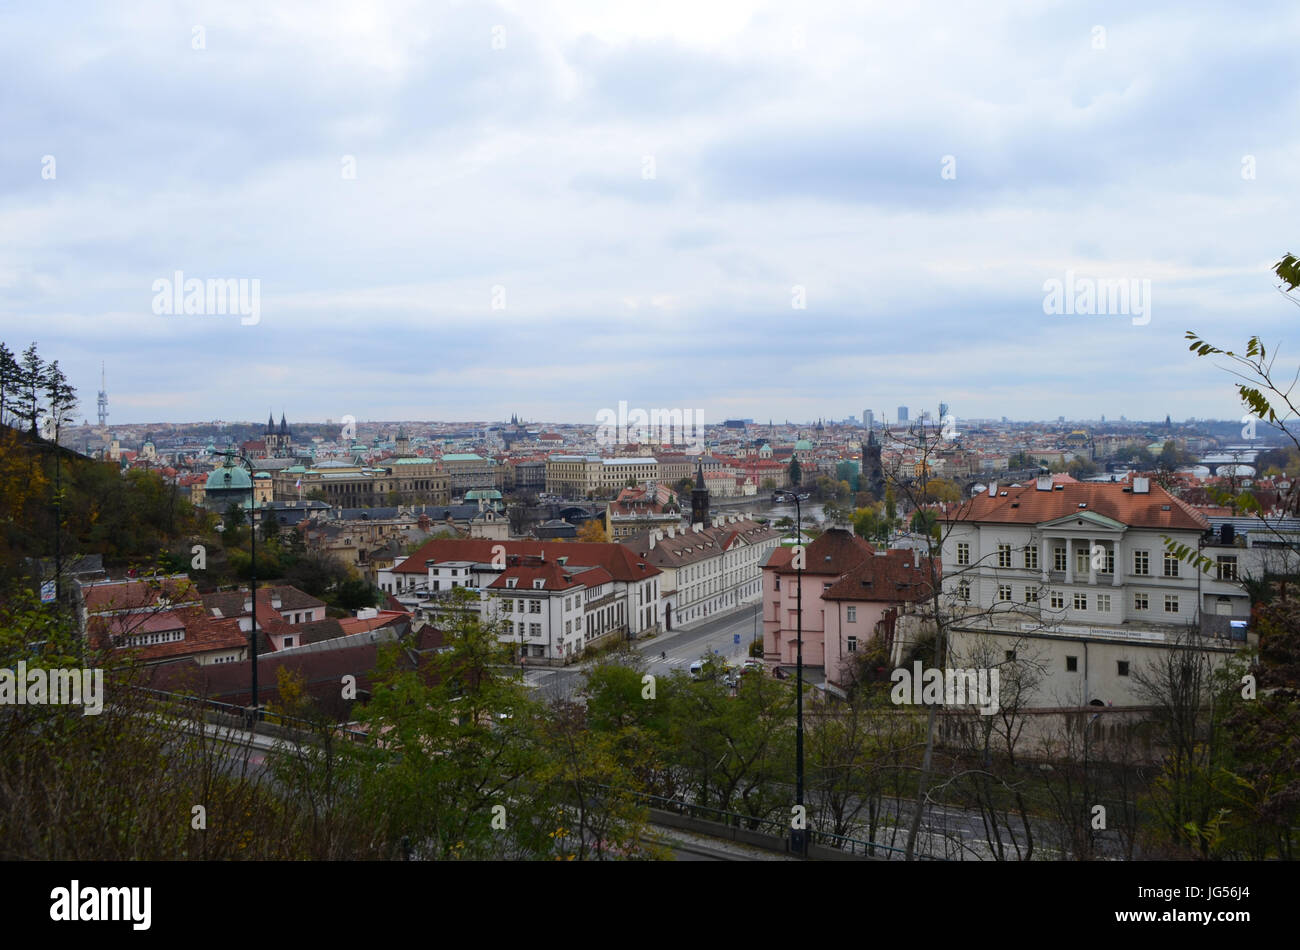 High City View from Letna Park in Prague, Czech Republic Stock Photo